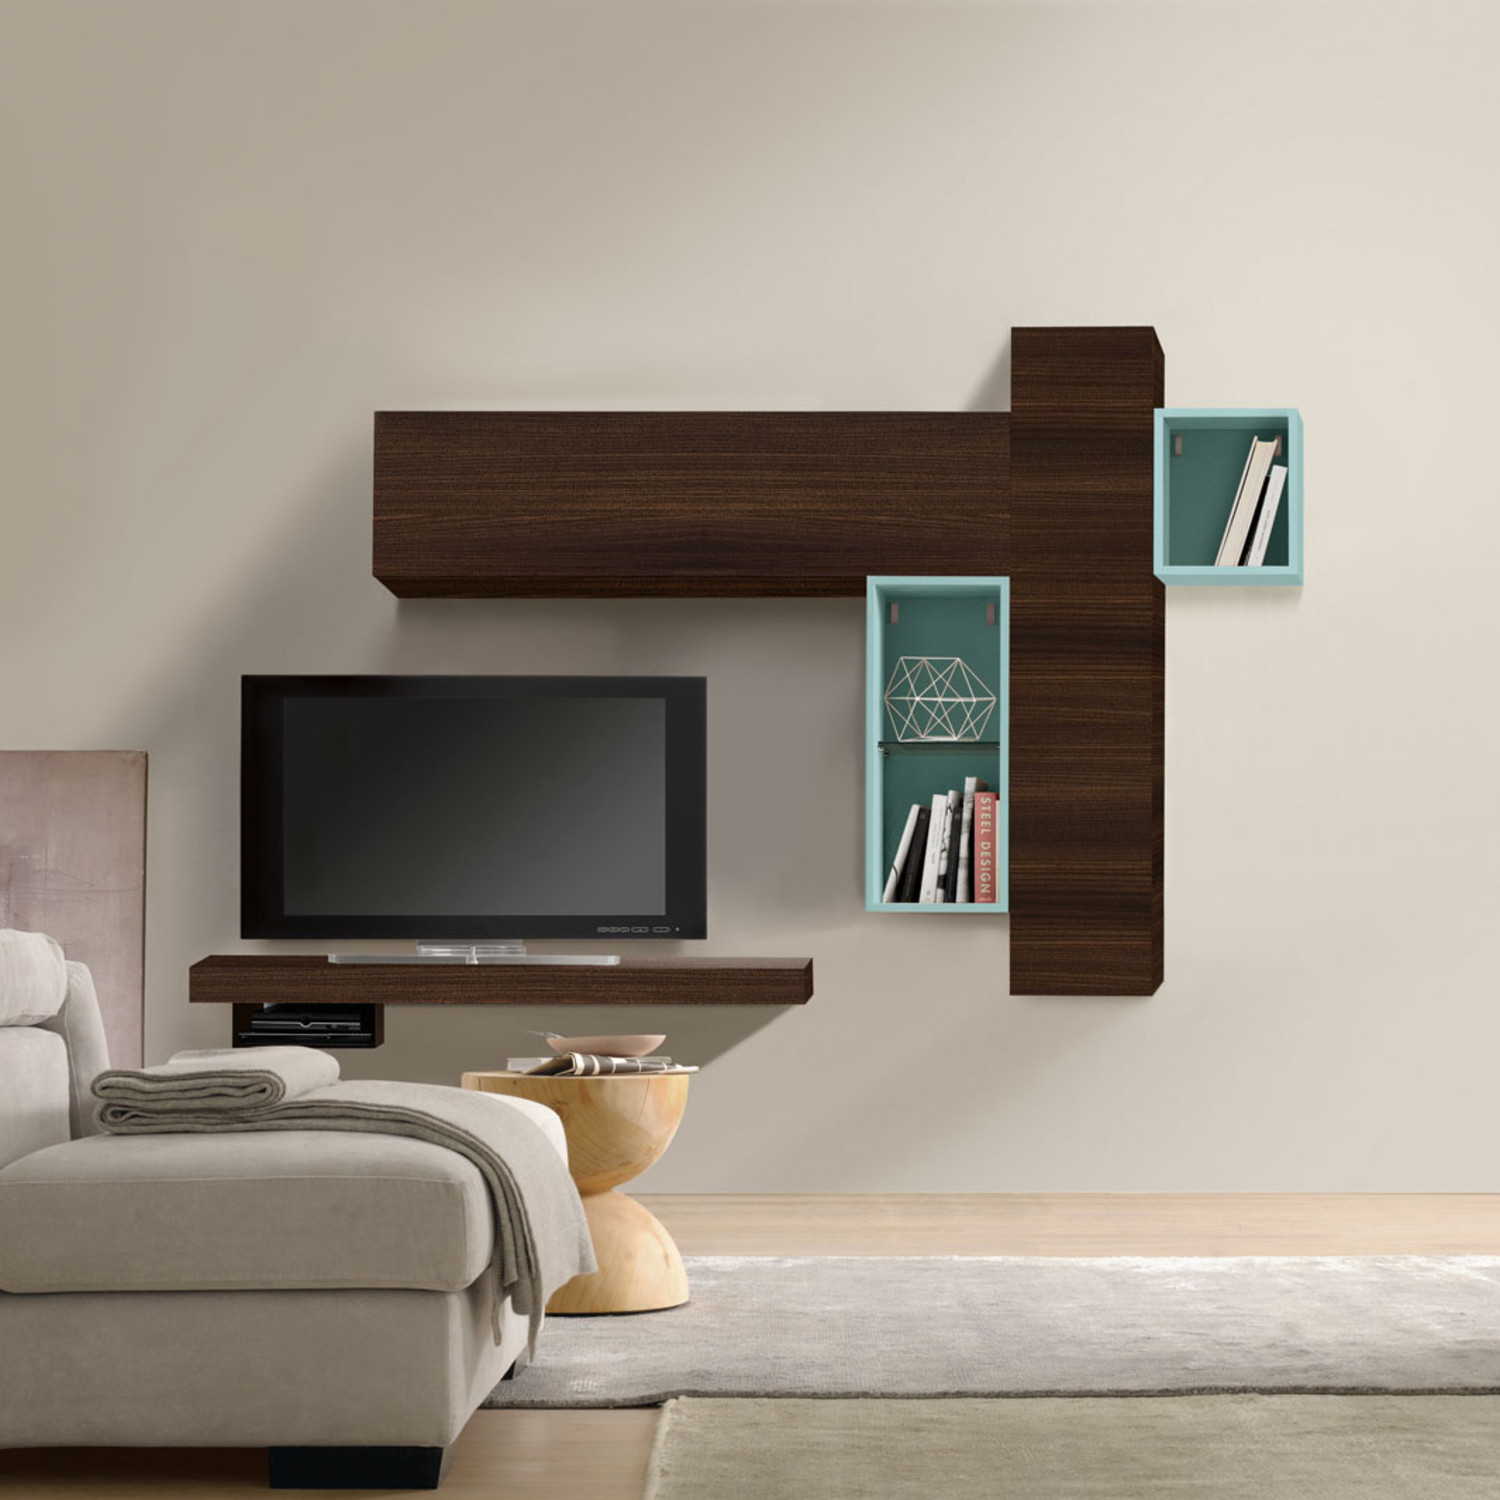 https://www.touchofmodern.com/sales/modloft-living-a66c92c5-f601-4bb1-9ec7-f6793353394c/rimini-wall-unit-dark-elm-nile-blue?share_invite_token=WQ3PD6V0